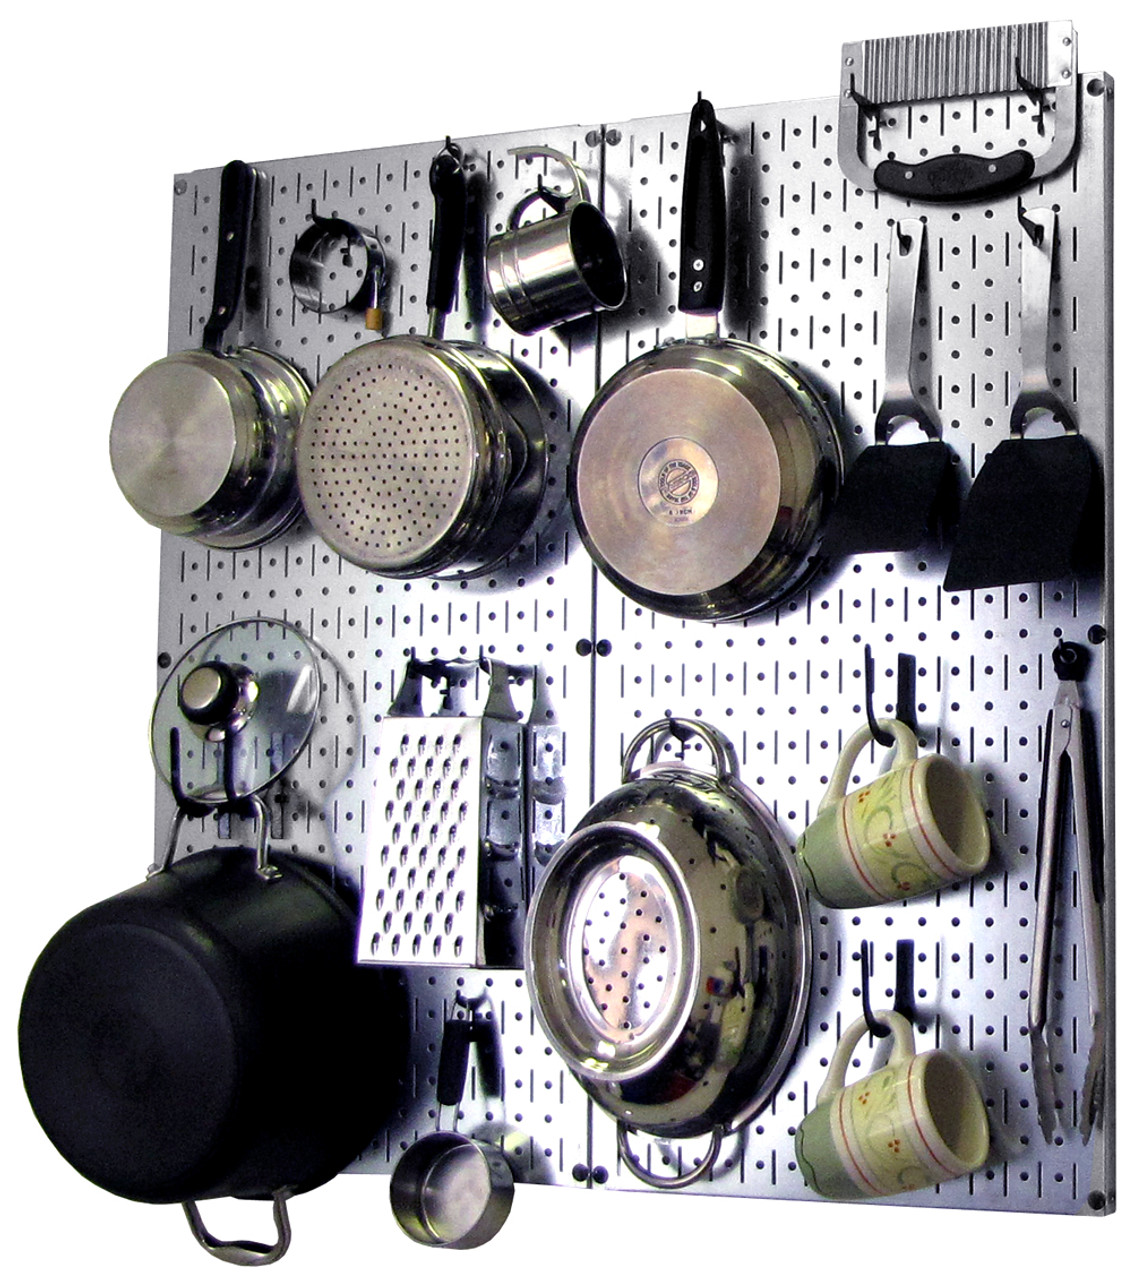 Steel Kitchen Pegboard Organizer Metallic Hanging Pot Rack Wall